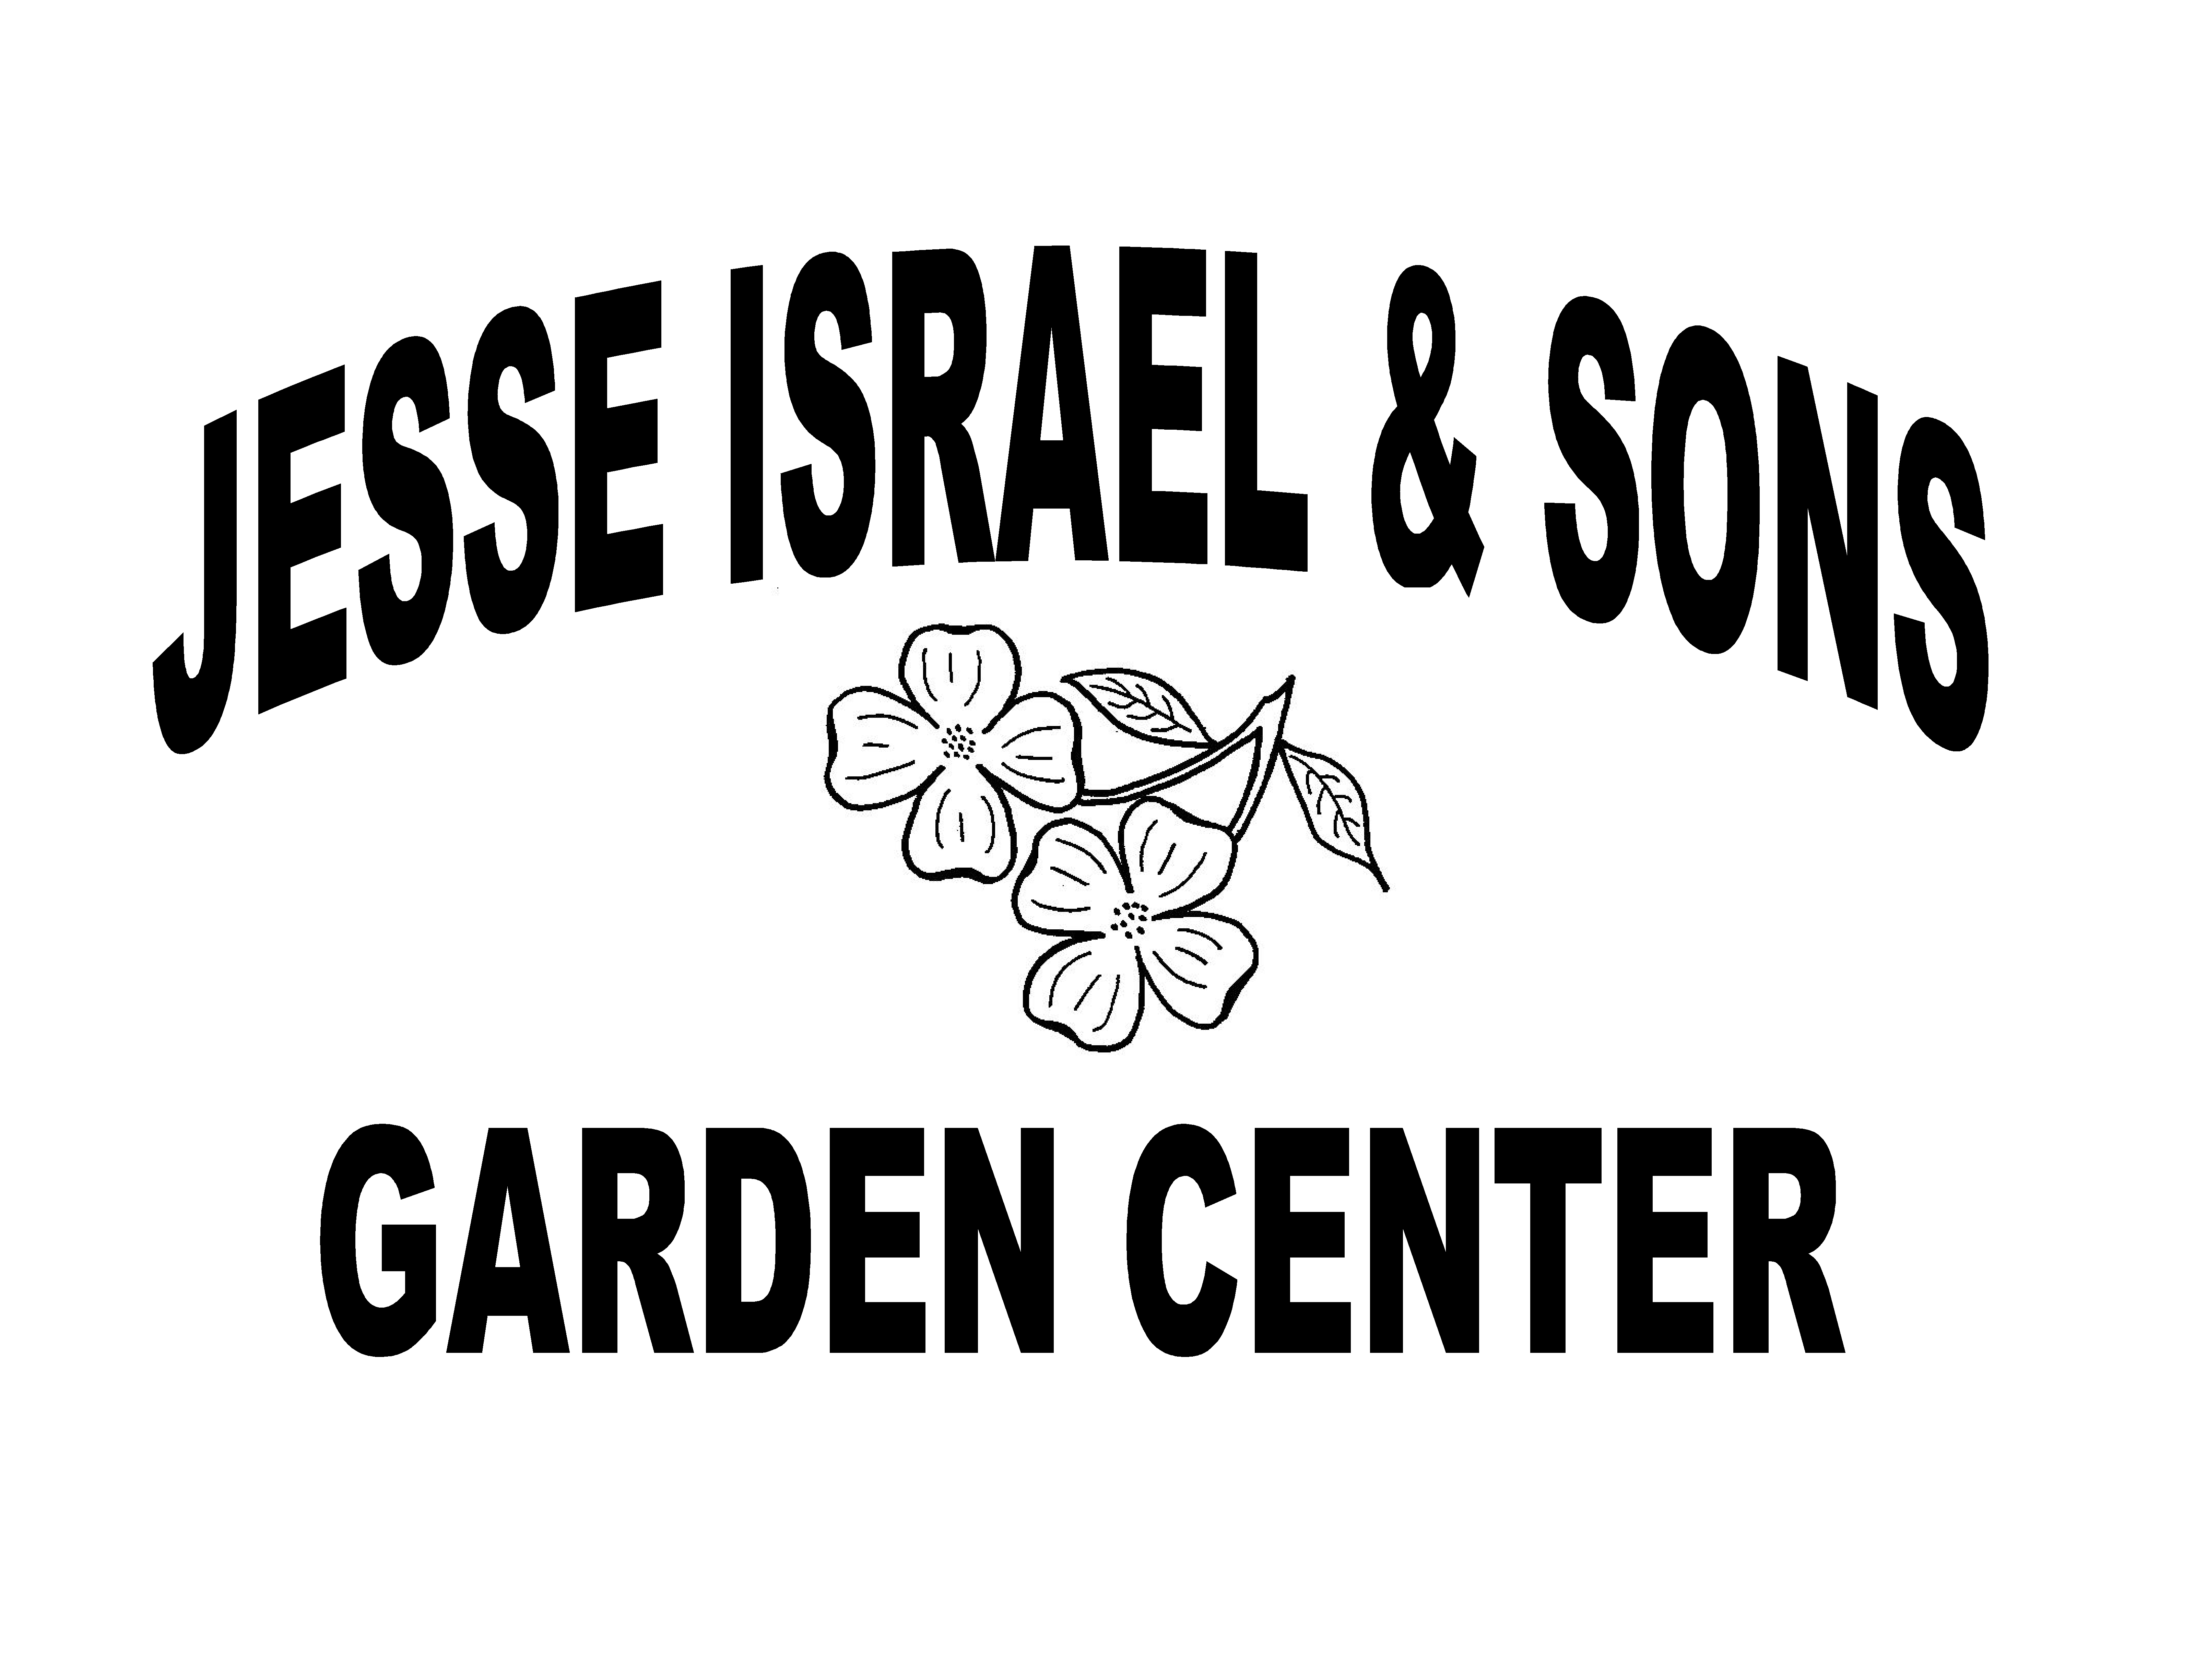 Jesse Israel & Sons Garden Center